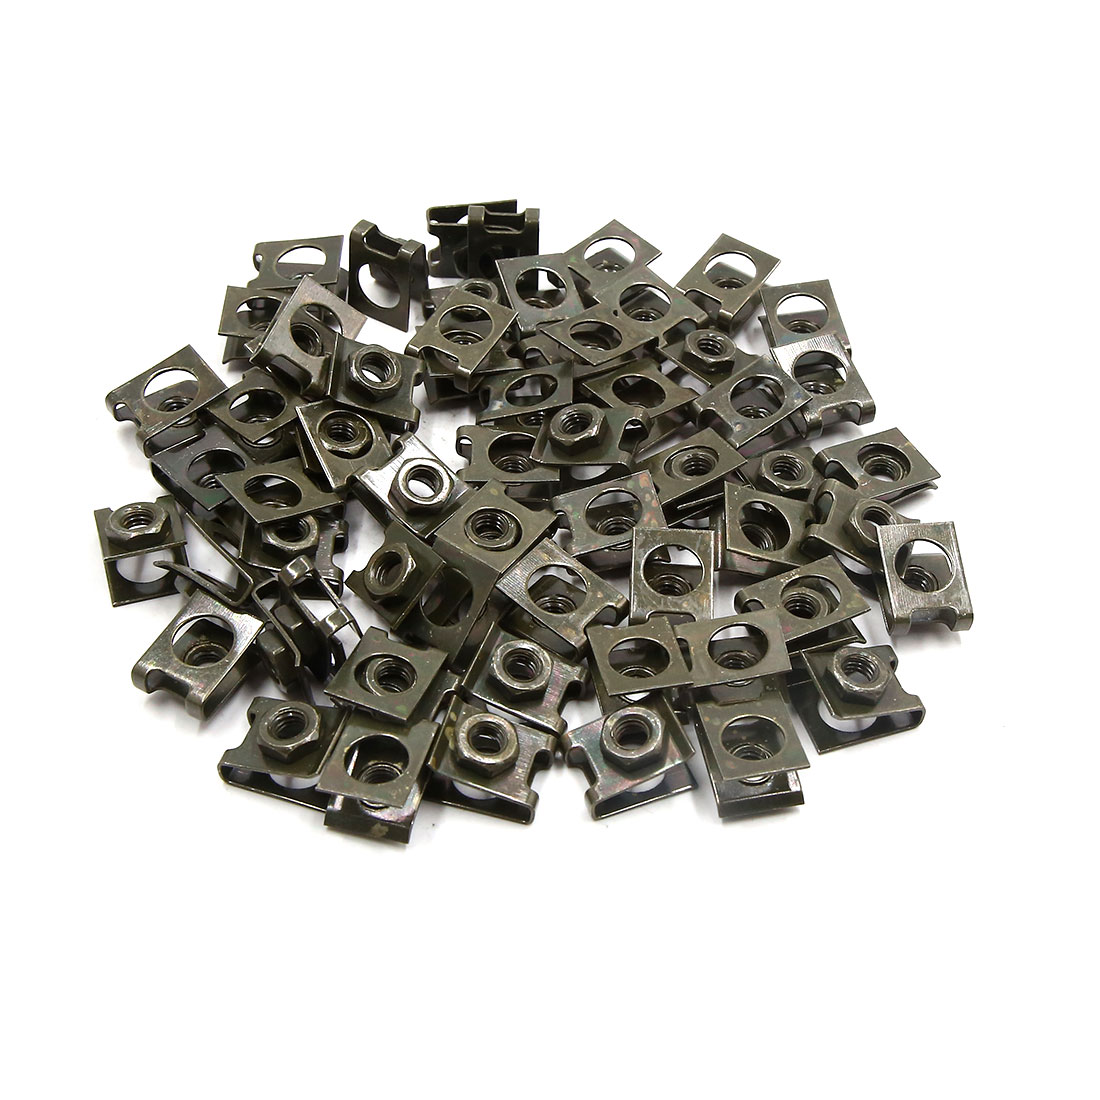 60pcs 5mm Dark Green Metal Motorcycle Car Rivets Door Panel Screw Fastener Clips